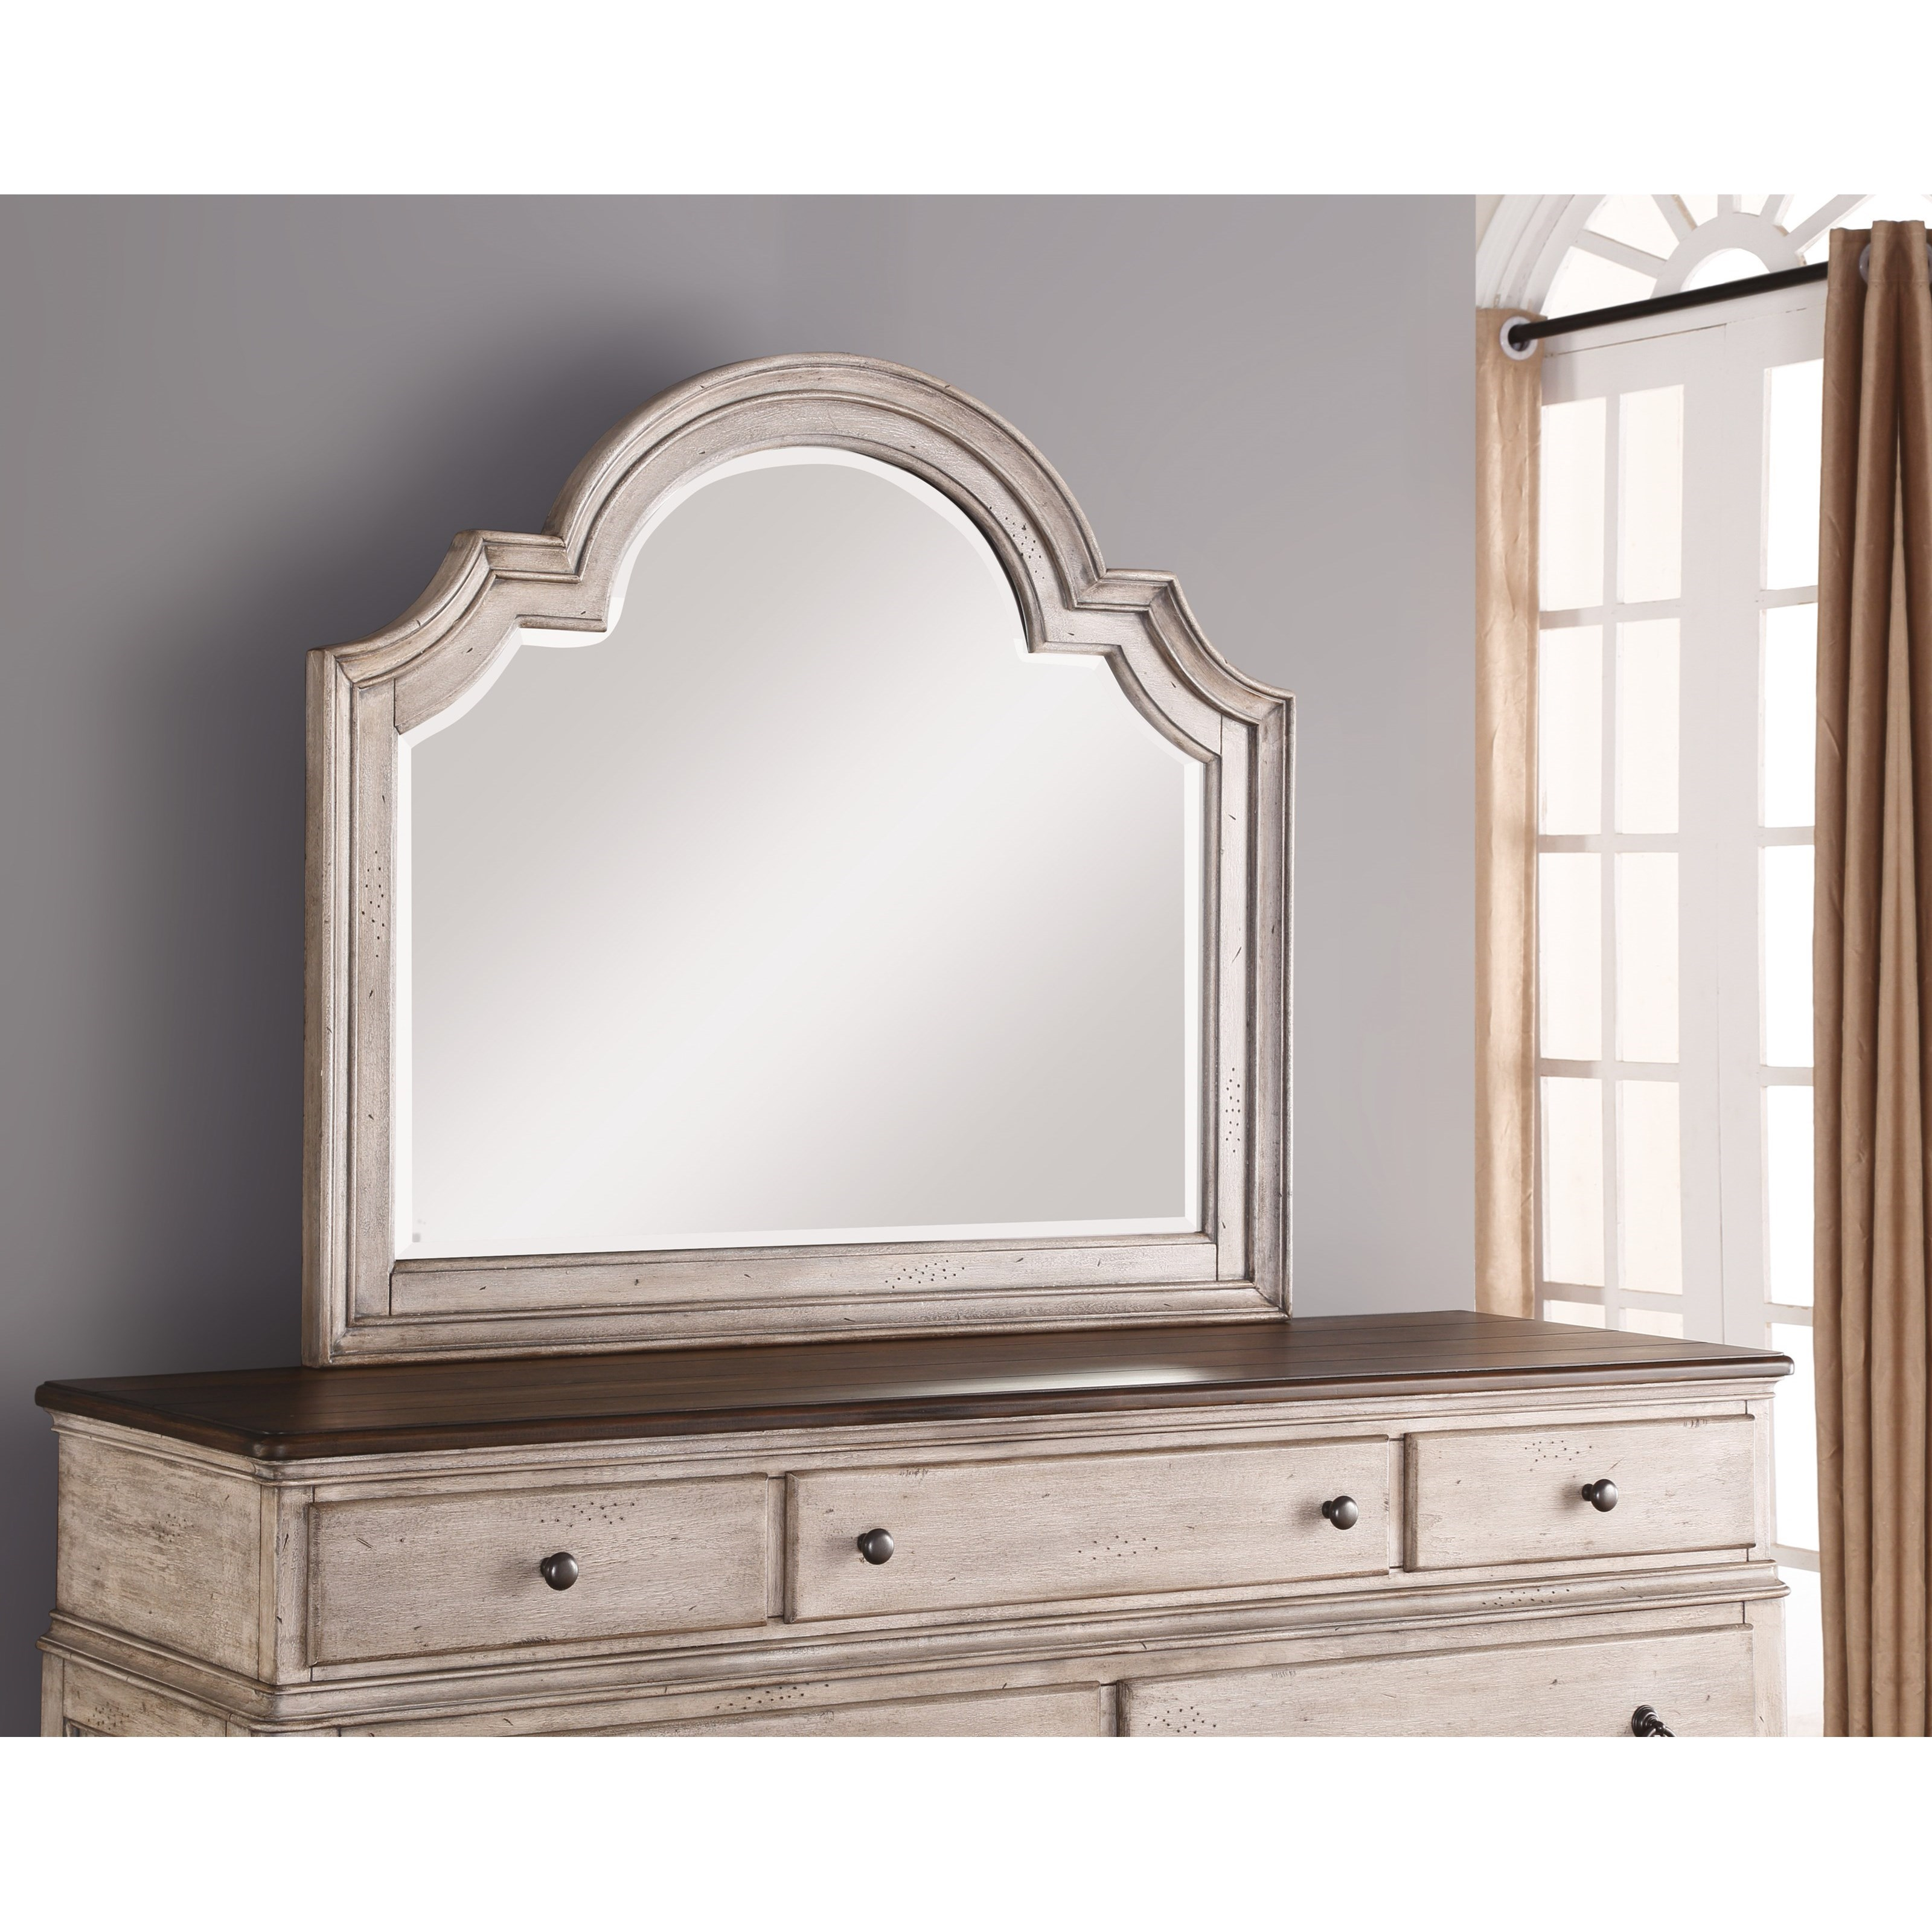 Plymouth Dresser Mirror by Flexsteel Wynwood Collection at Northeast Factory Direct